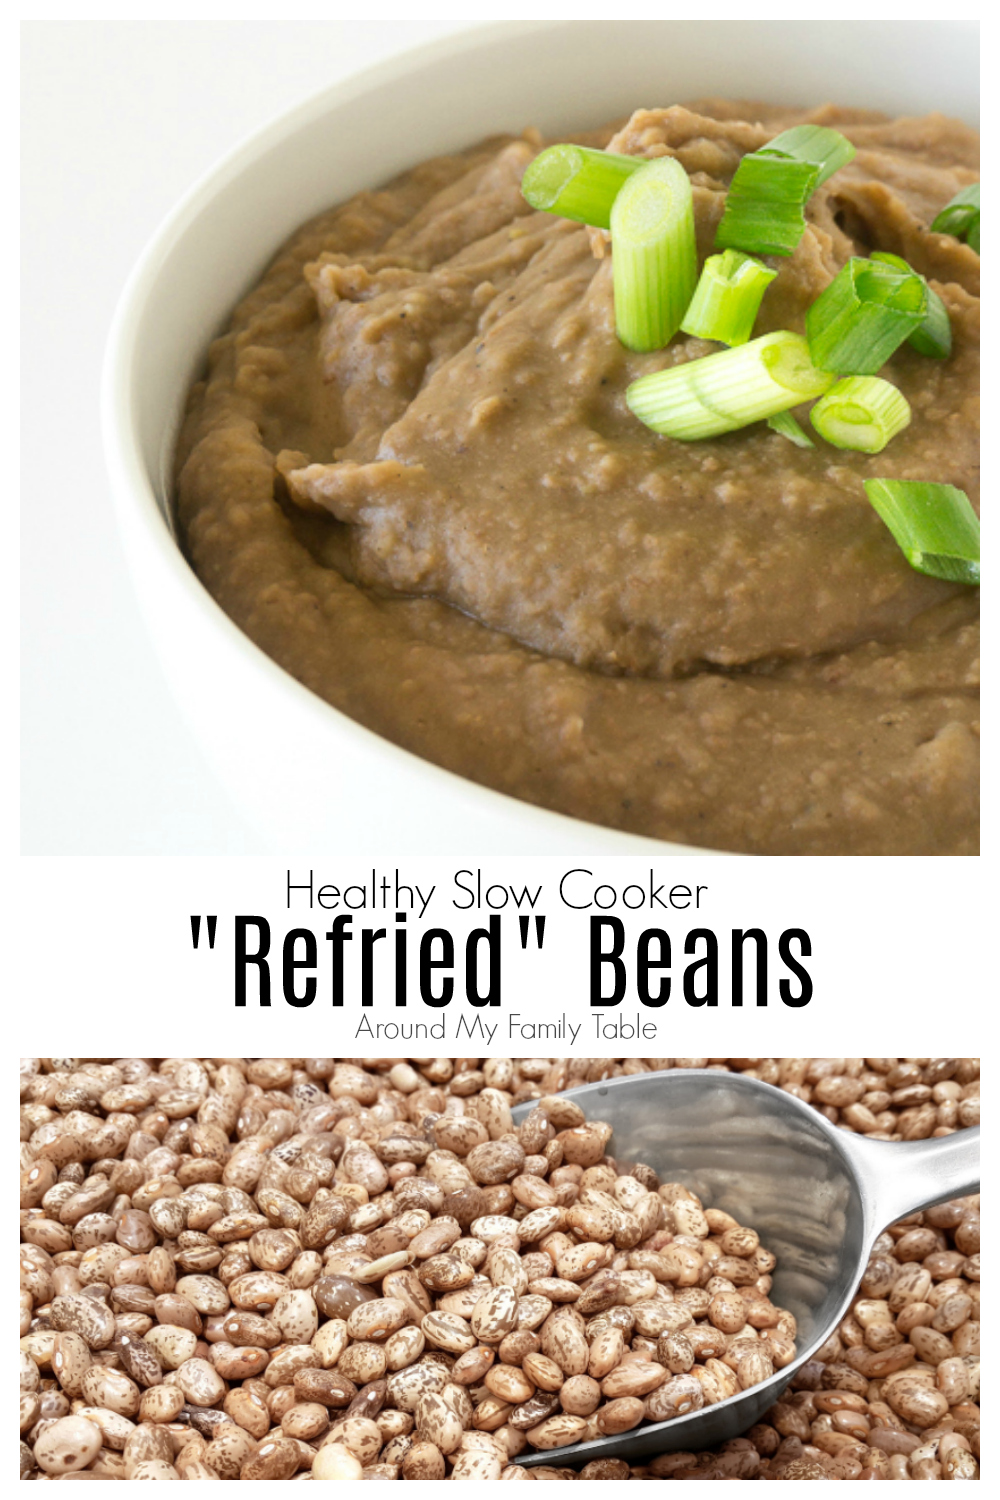 This refried beans recipe is easy to make in your crockpot or pressure cooker! It produces creamy smooth beans that can be used as a side dish, or added to tacos, burritos, and other Mexican slow cooker recipes. #refriedbeans #pintobeans #slowocooker #crockpot #instantpot #pressurecooker #mexicanfood #vegetarian via @slingmama